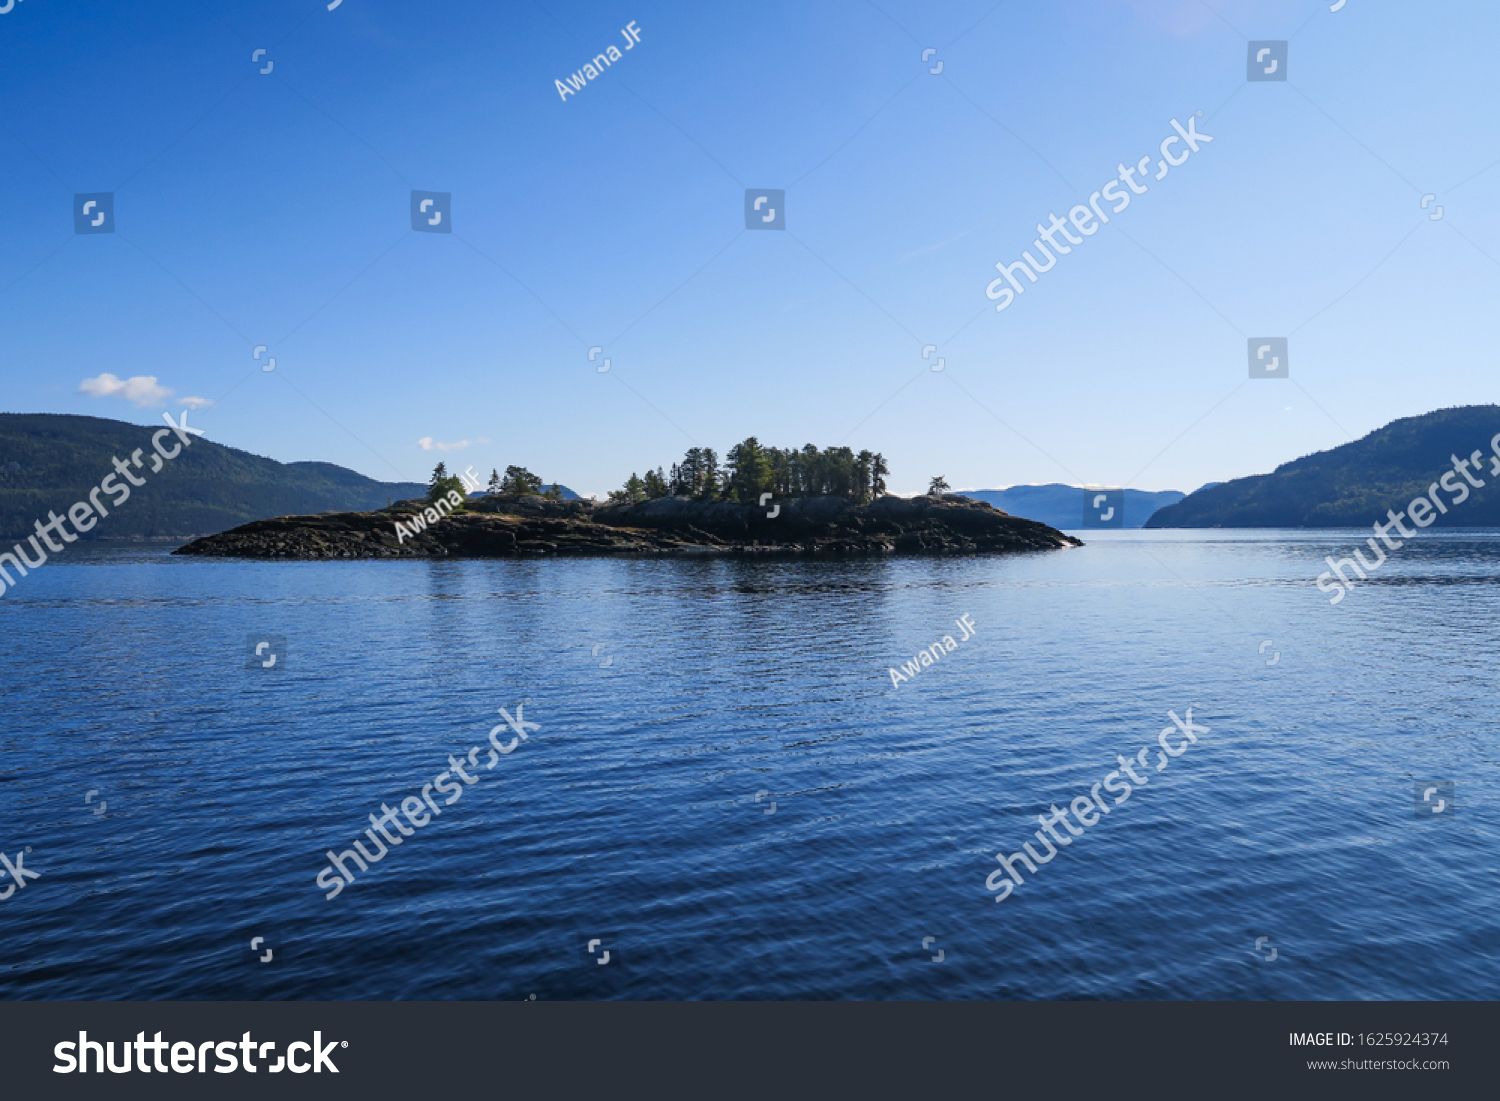 stock-photo-small-island-in-the-saguenay